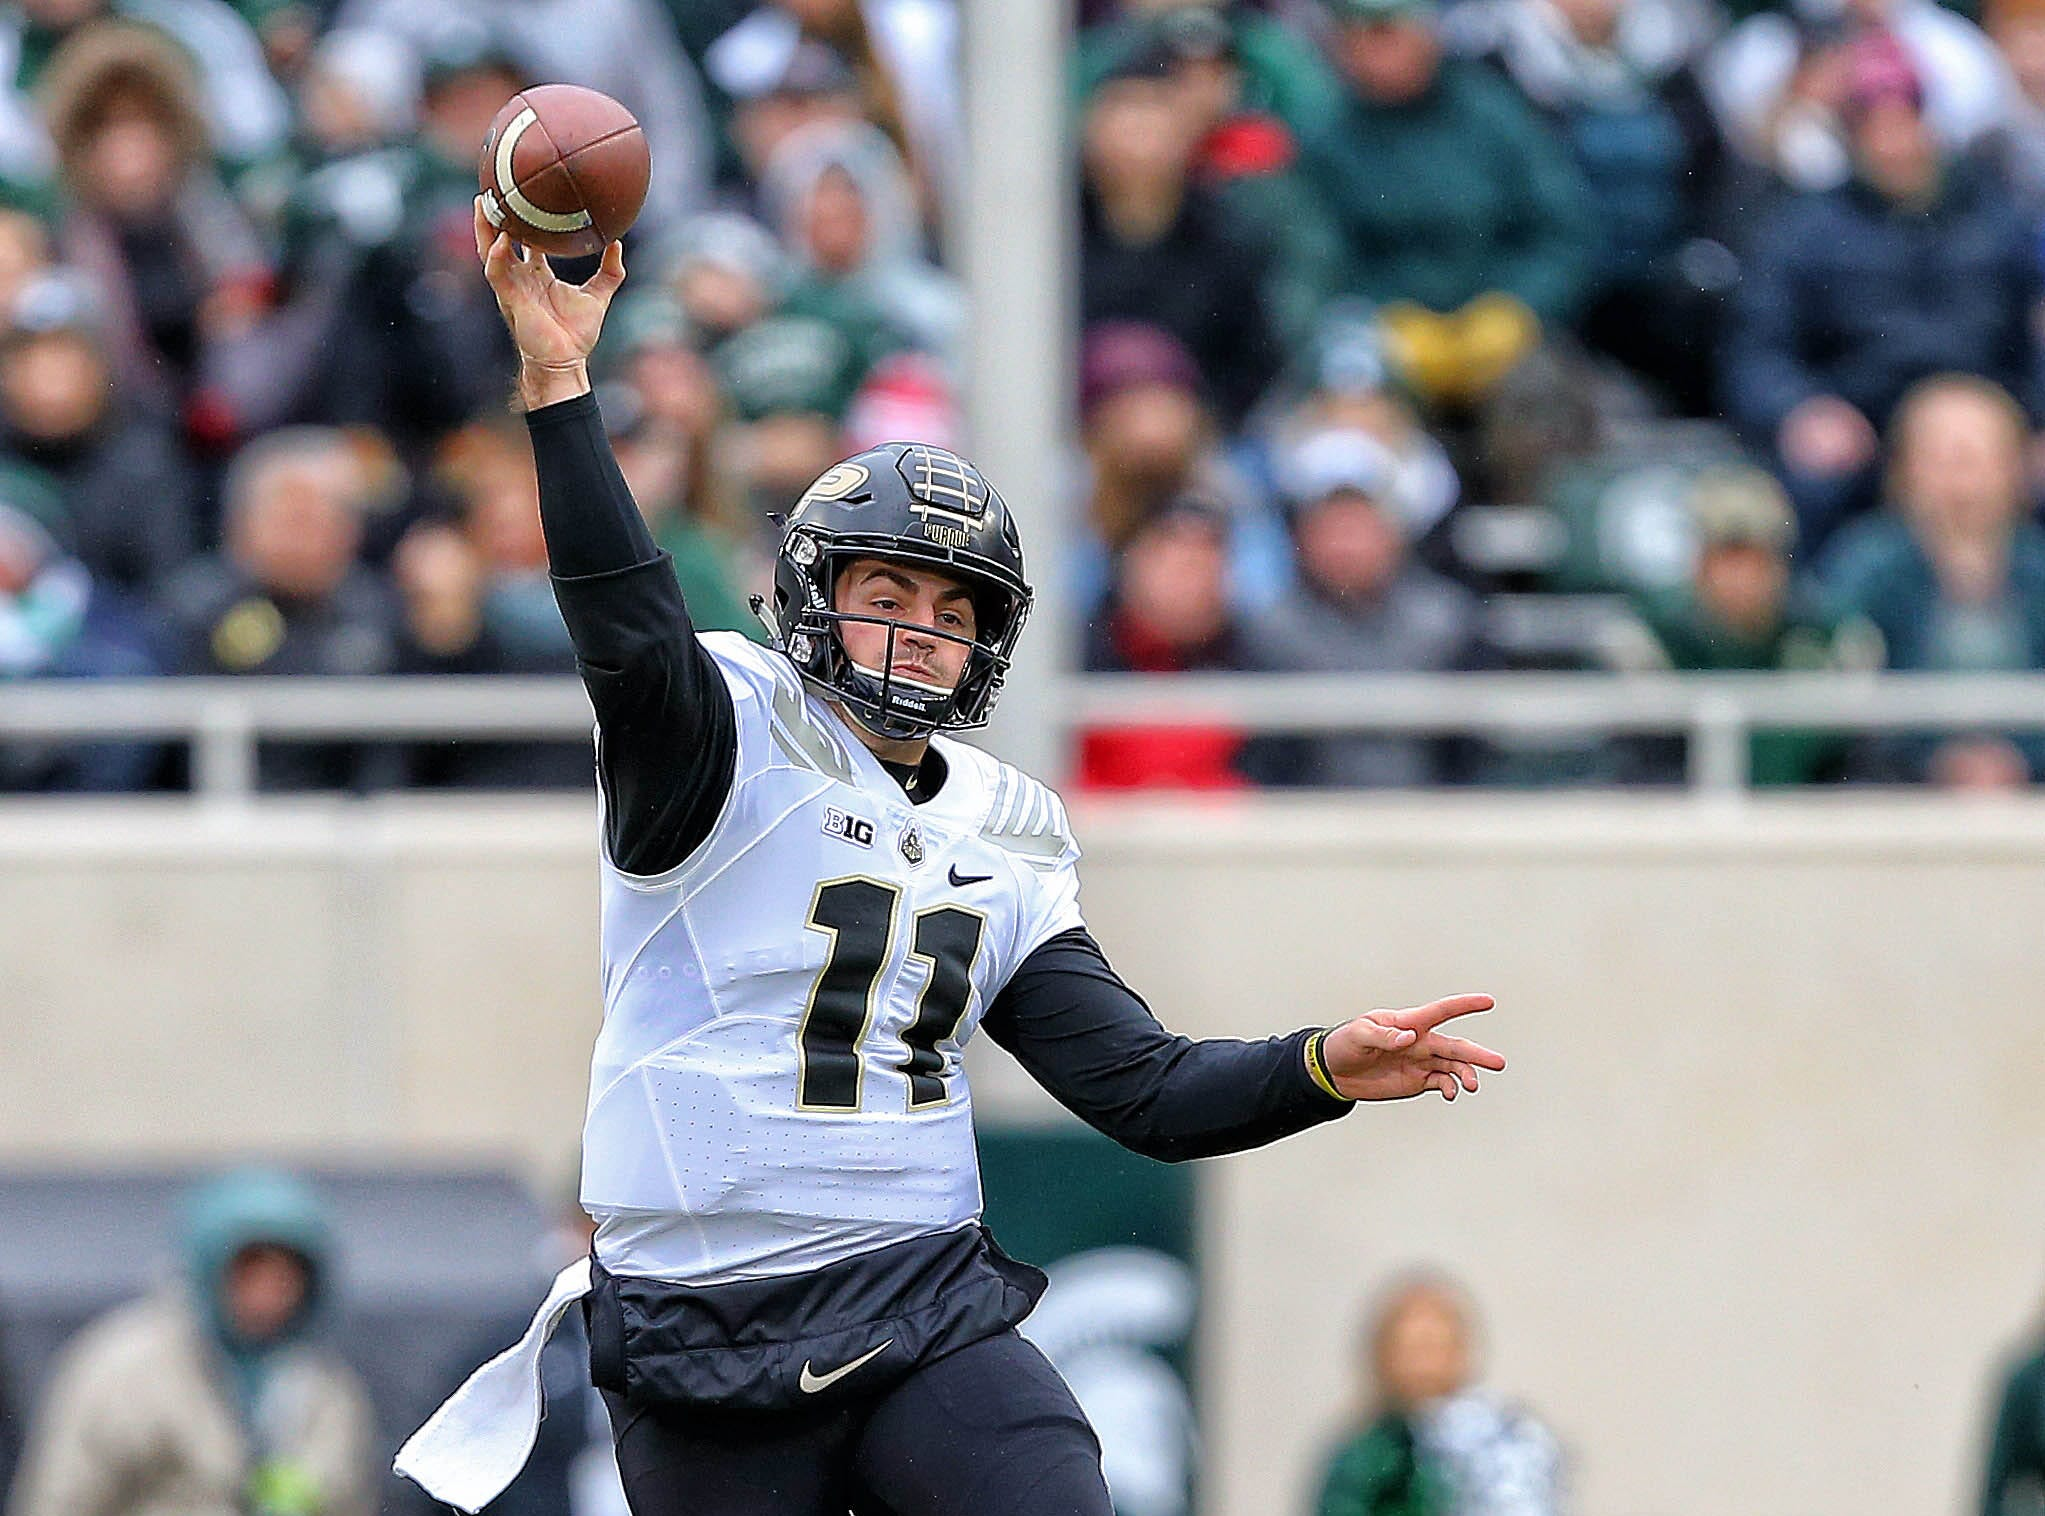 Oct 27, 2018; East Lansing, MI, USA; Purdue Boilermakers quarterback David Blough (11) scrambles out of the pocket against the Michigan State Spartans during the first quarter of a game at Spartan Stadium. Mandatory Credit: Mike Carter-USA TODAY Sports